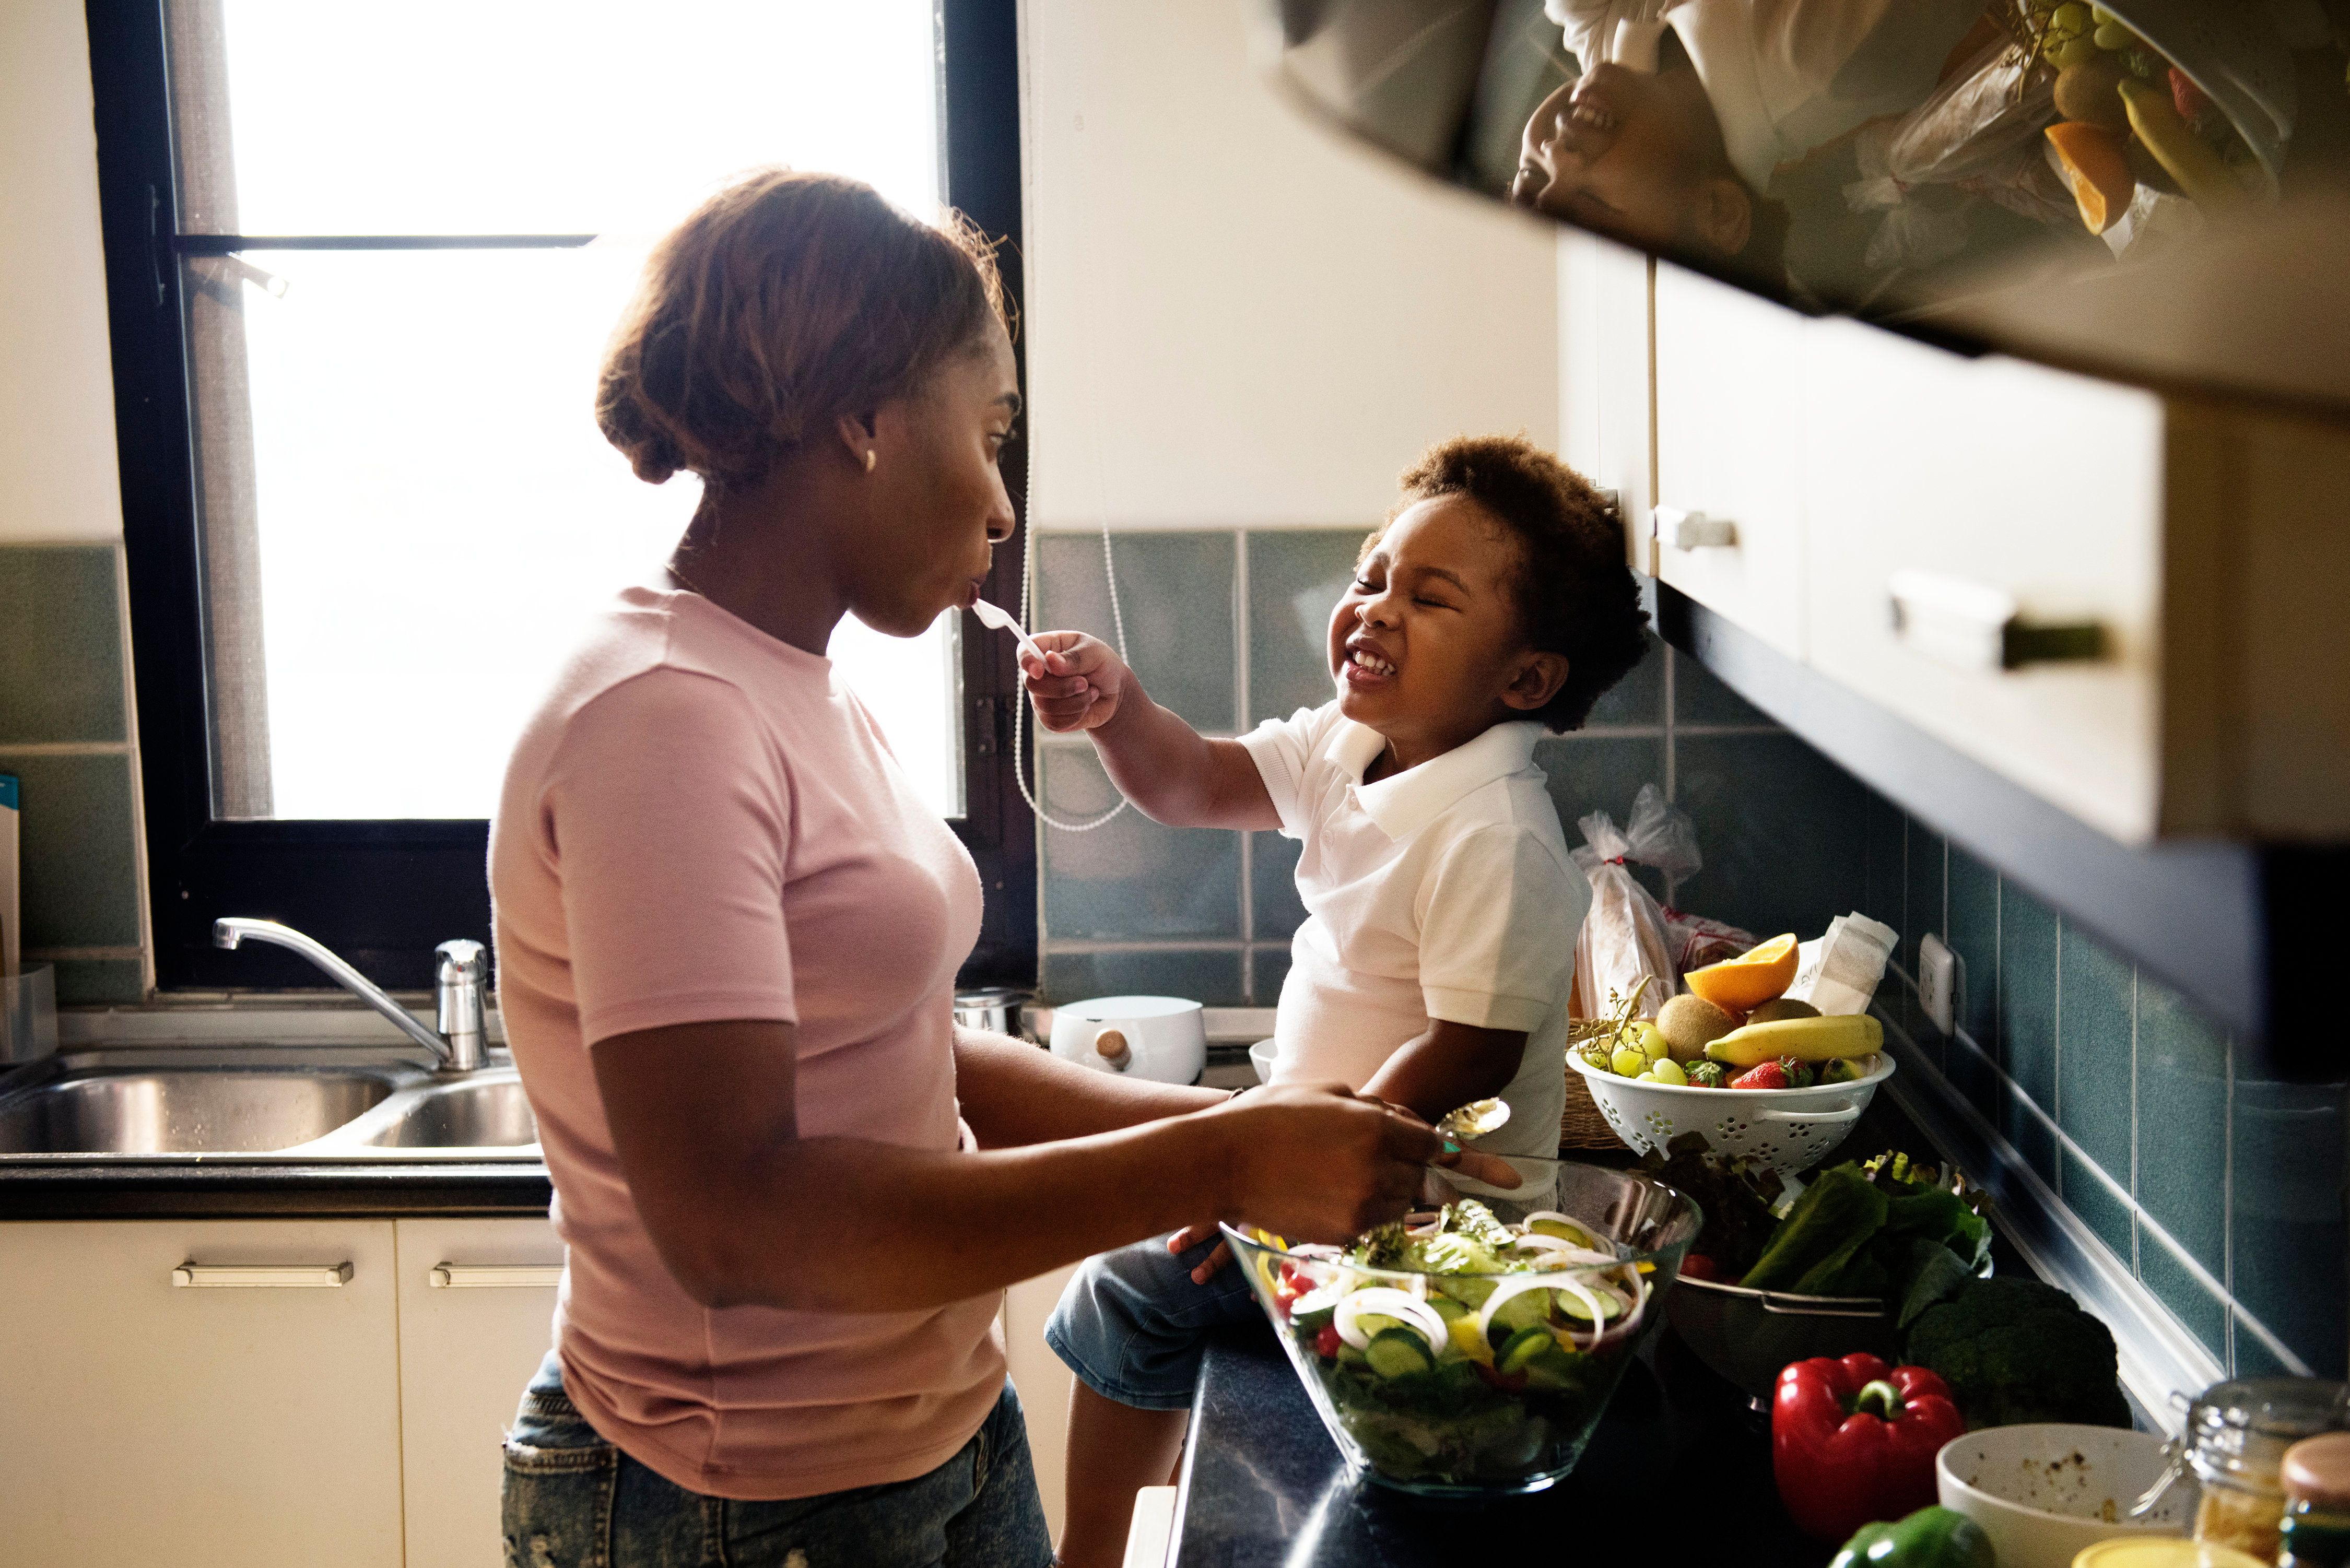 A Third Of Britons Think Mothers Should Stay At Home With Their